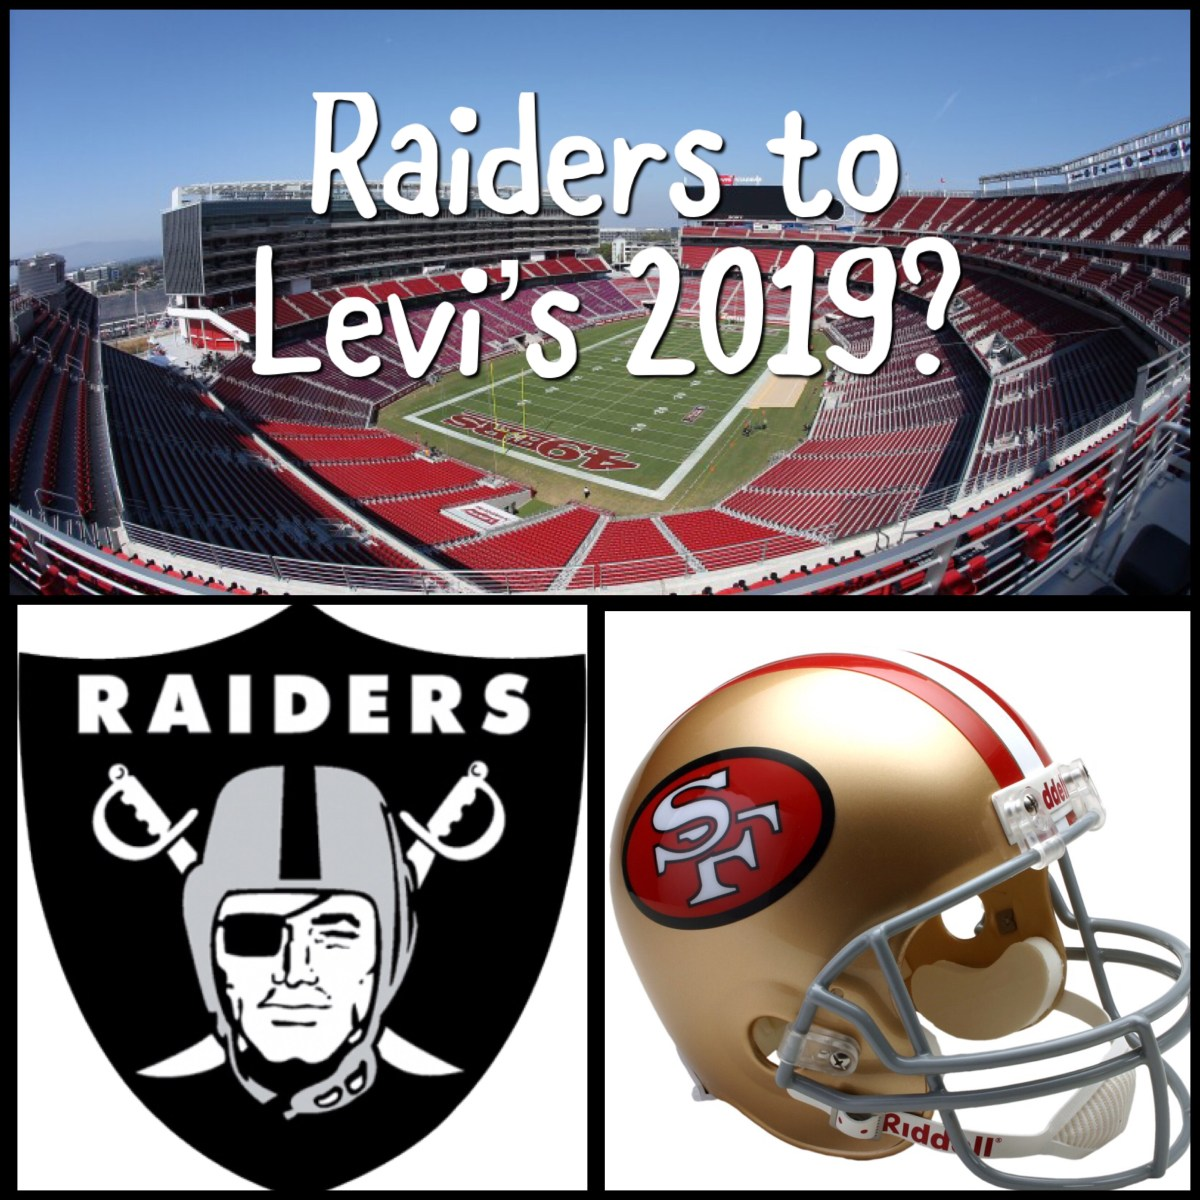 Raiders New Stadium: Will Santa Clara Have Two NFL Teams Playing At Levi's